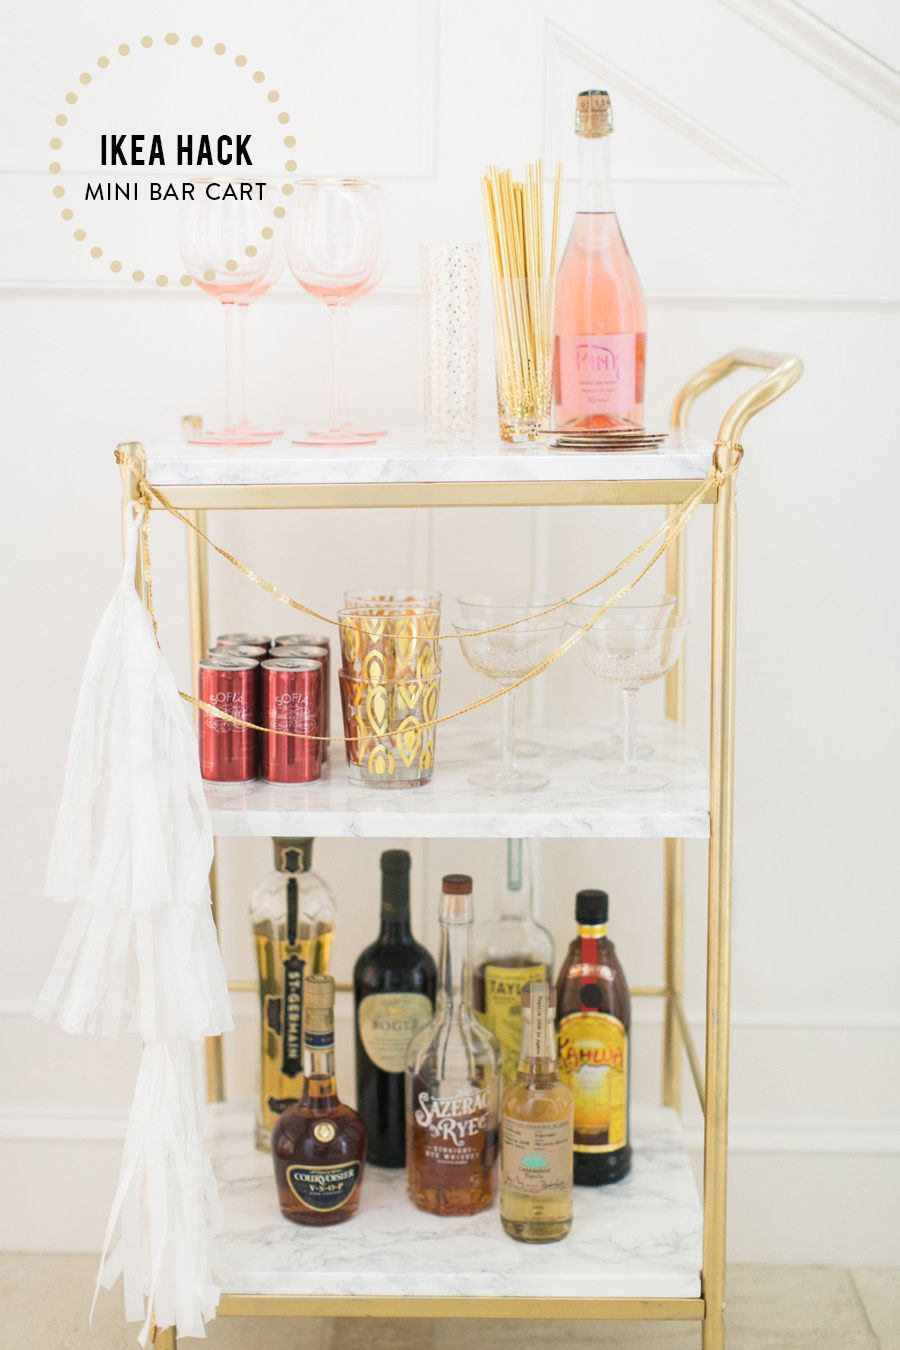 ikea hack diy mini bar cart bar carts ikea hack and bar. Black Bedroom Furniture Sets. Home Design Ideas